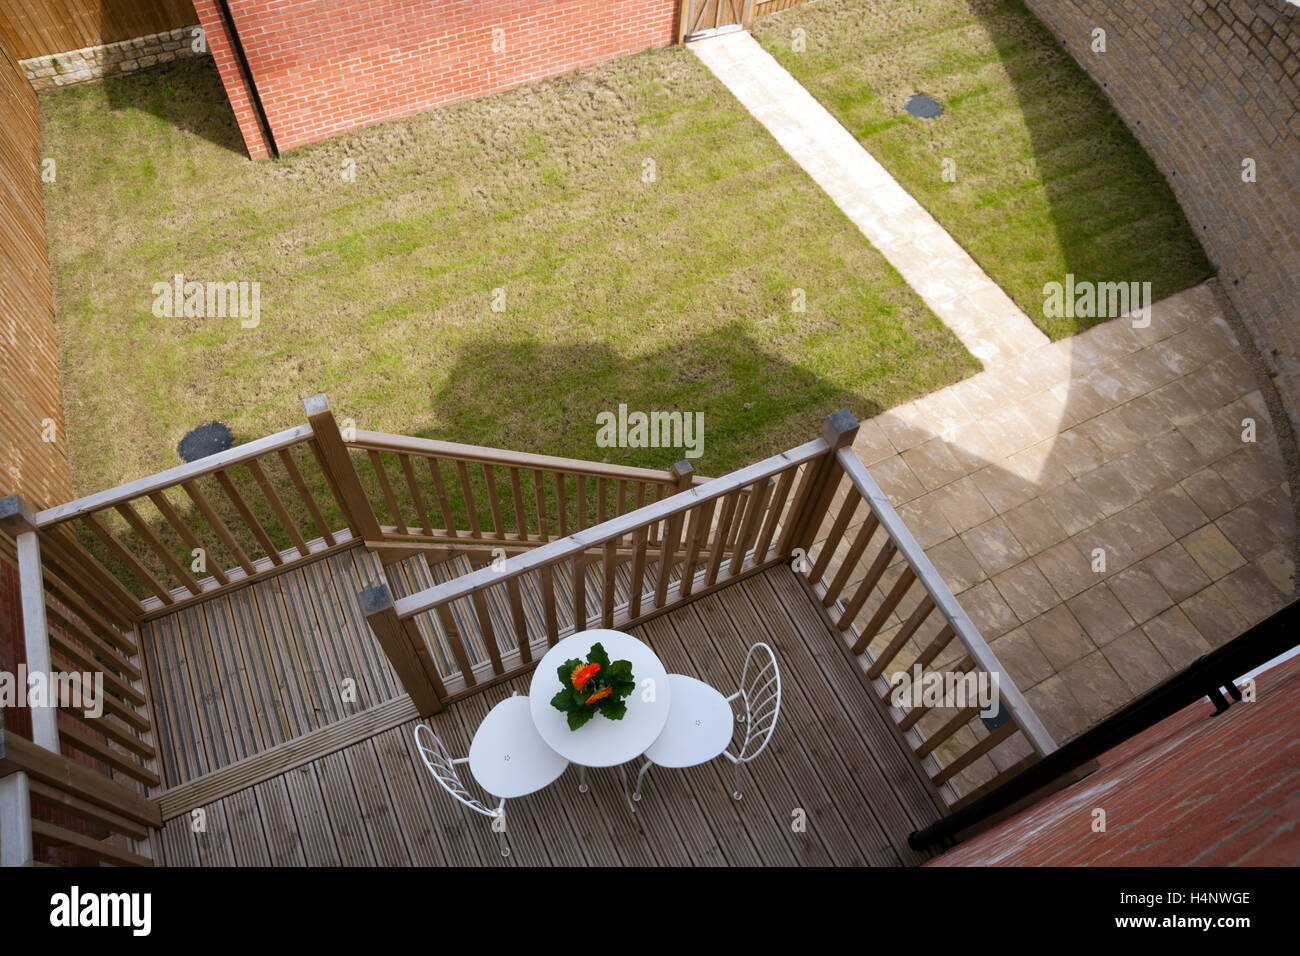 Looking down on a property development garden and decked balcony seating area - Stock Image